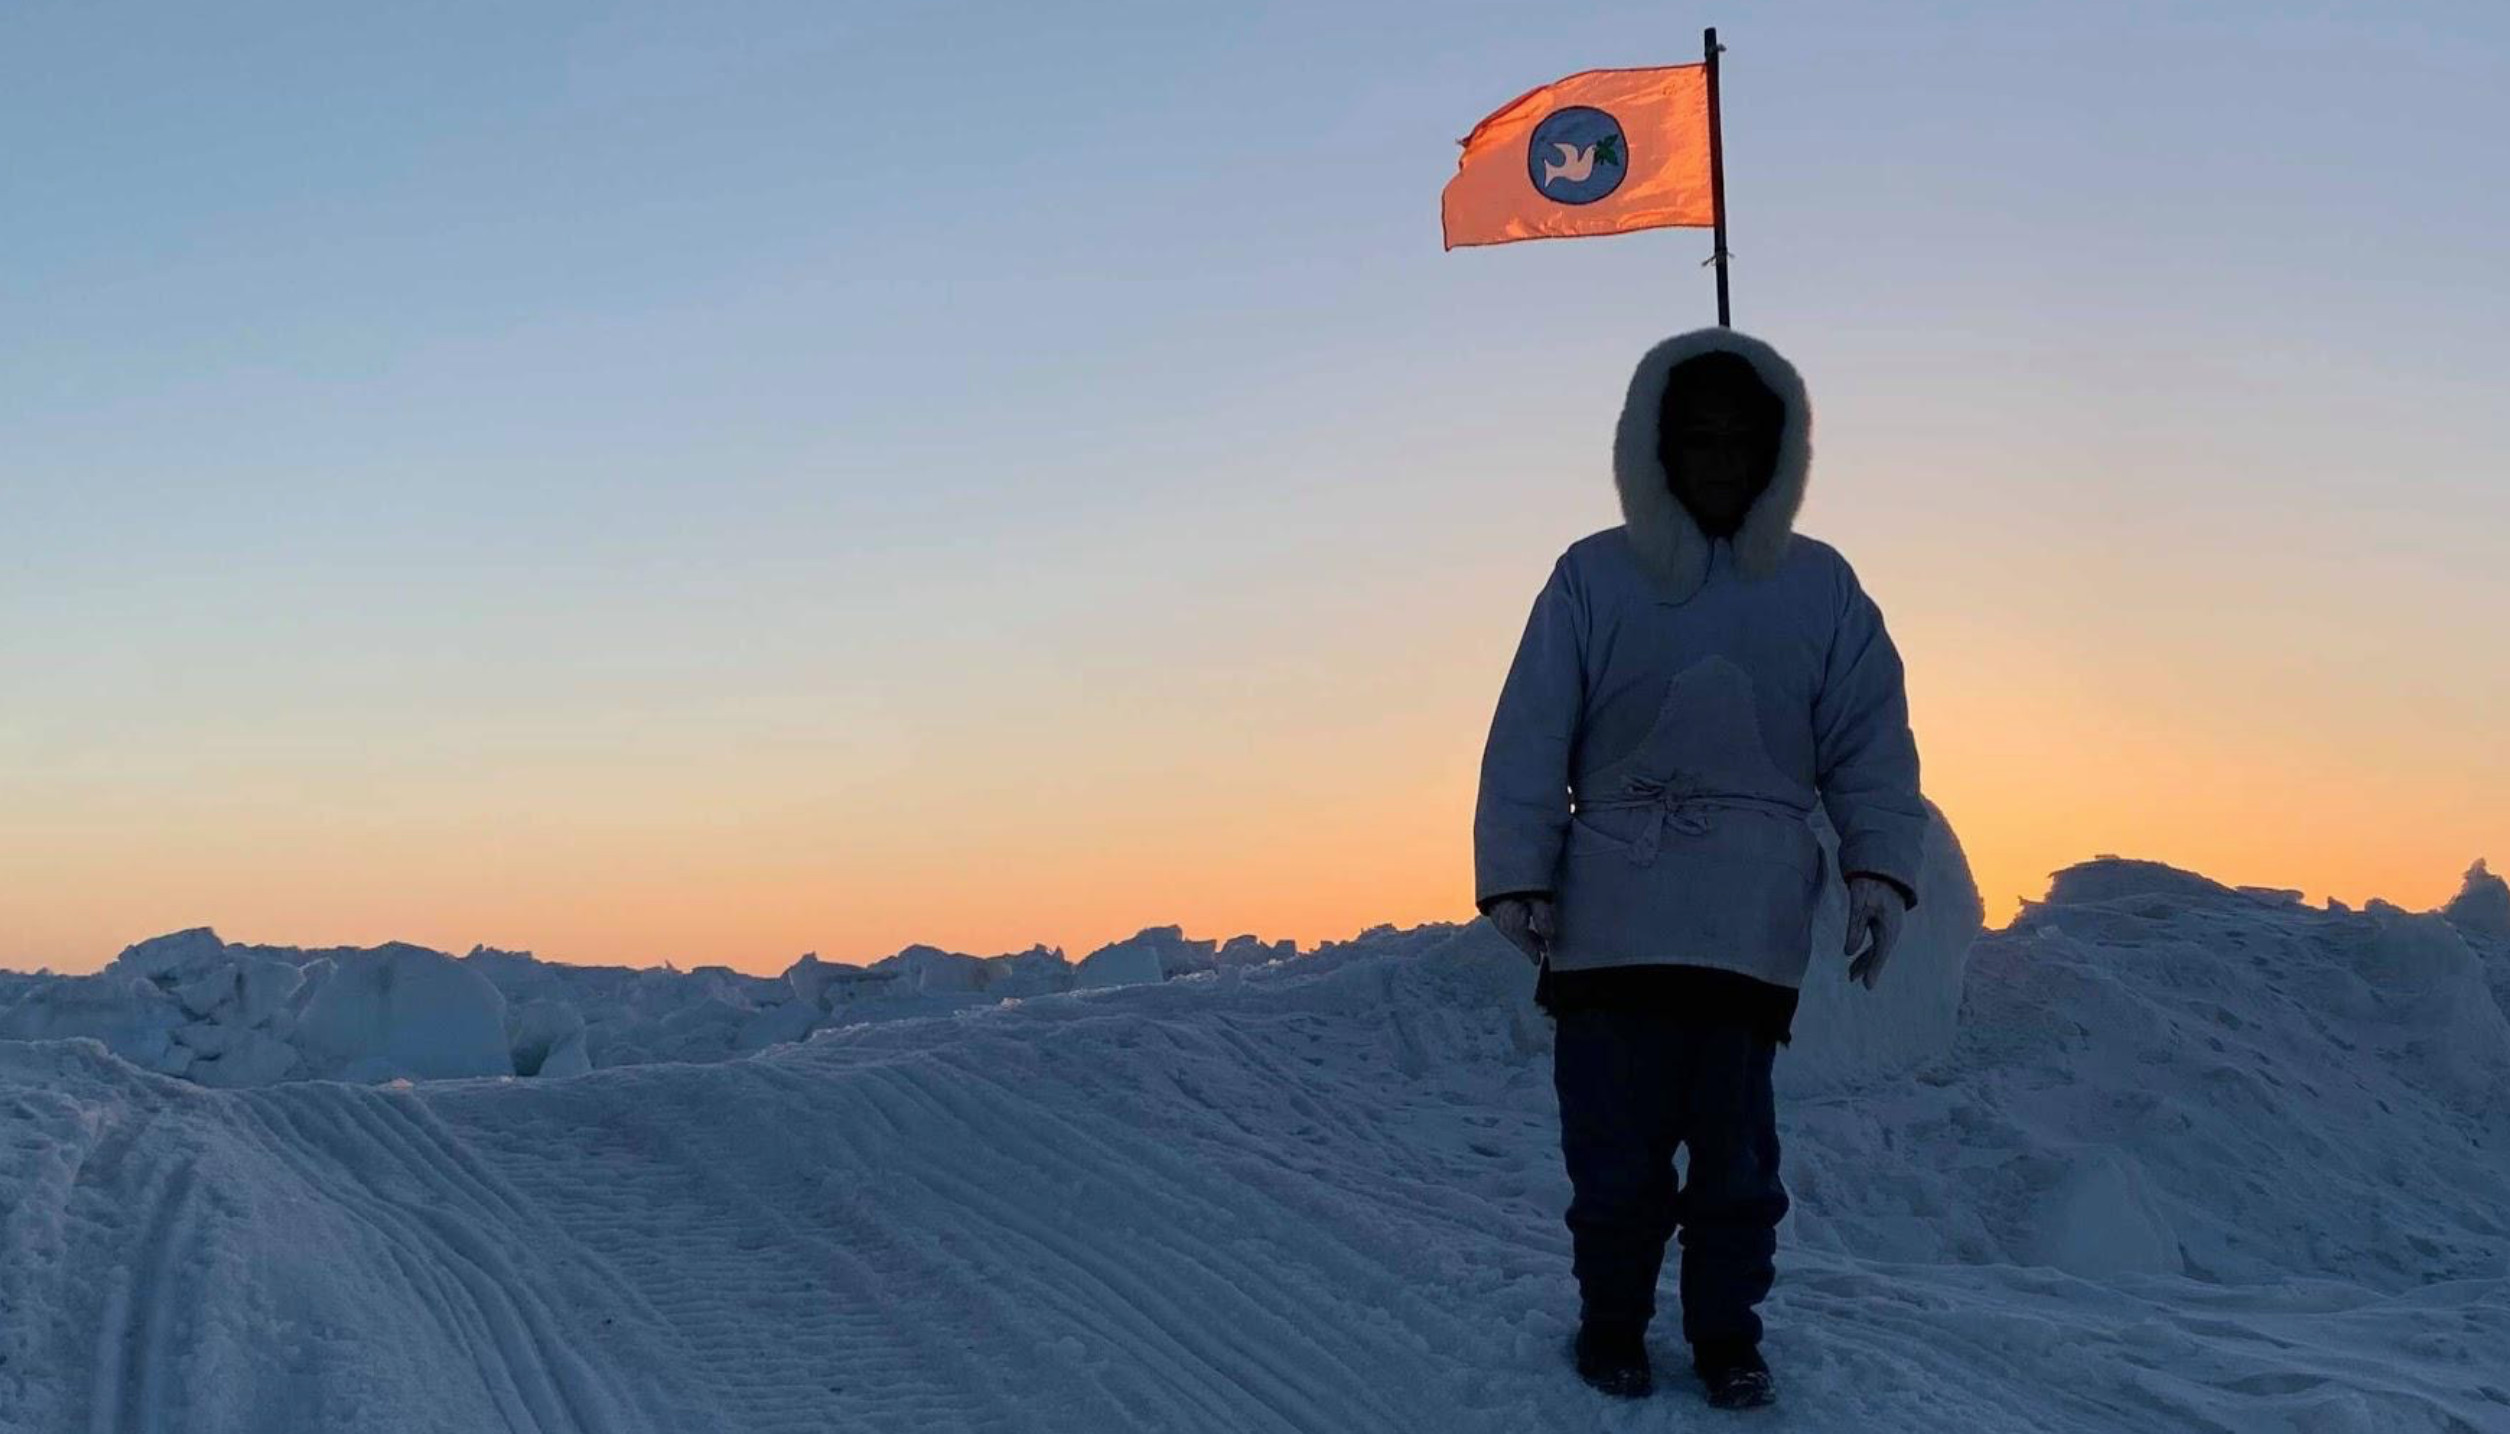 The flag of Gordon Ikayuak Brower successful whaling crew posted on the sea-ice. Photo: Courtesy of Gordon Ikayuak Brower